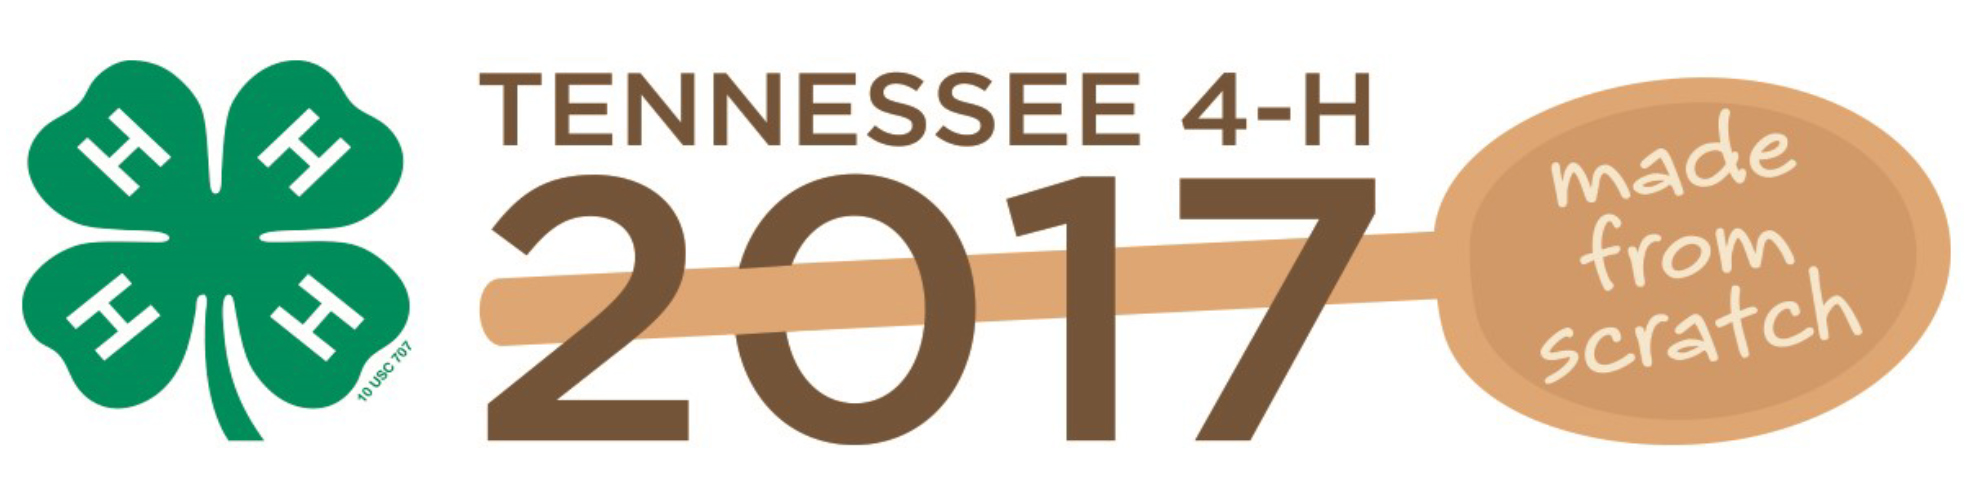 Tennessee 4-H 2017 Made From Scratch Logo